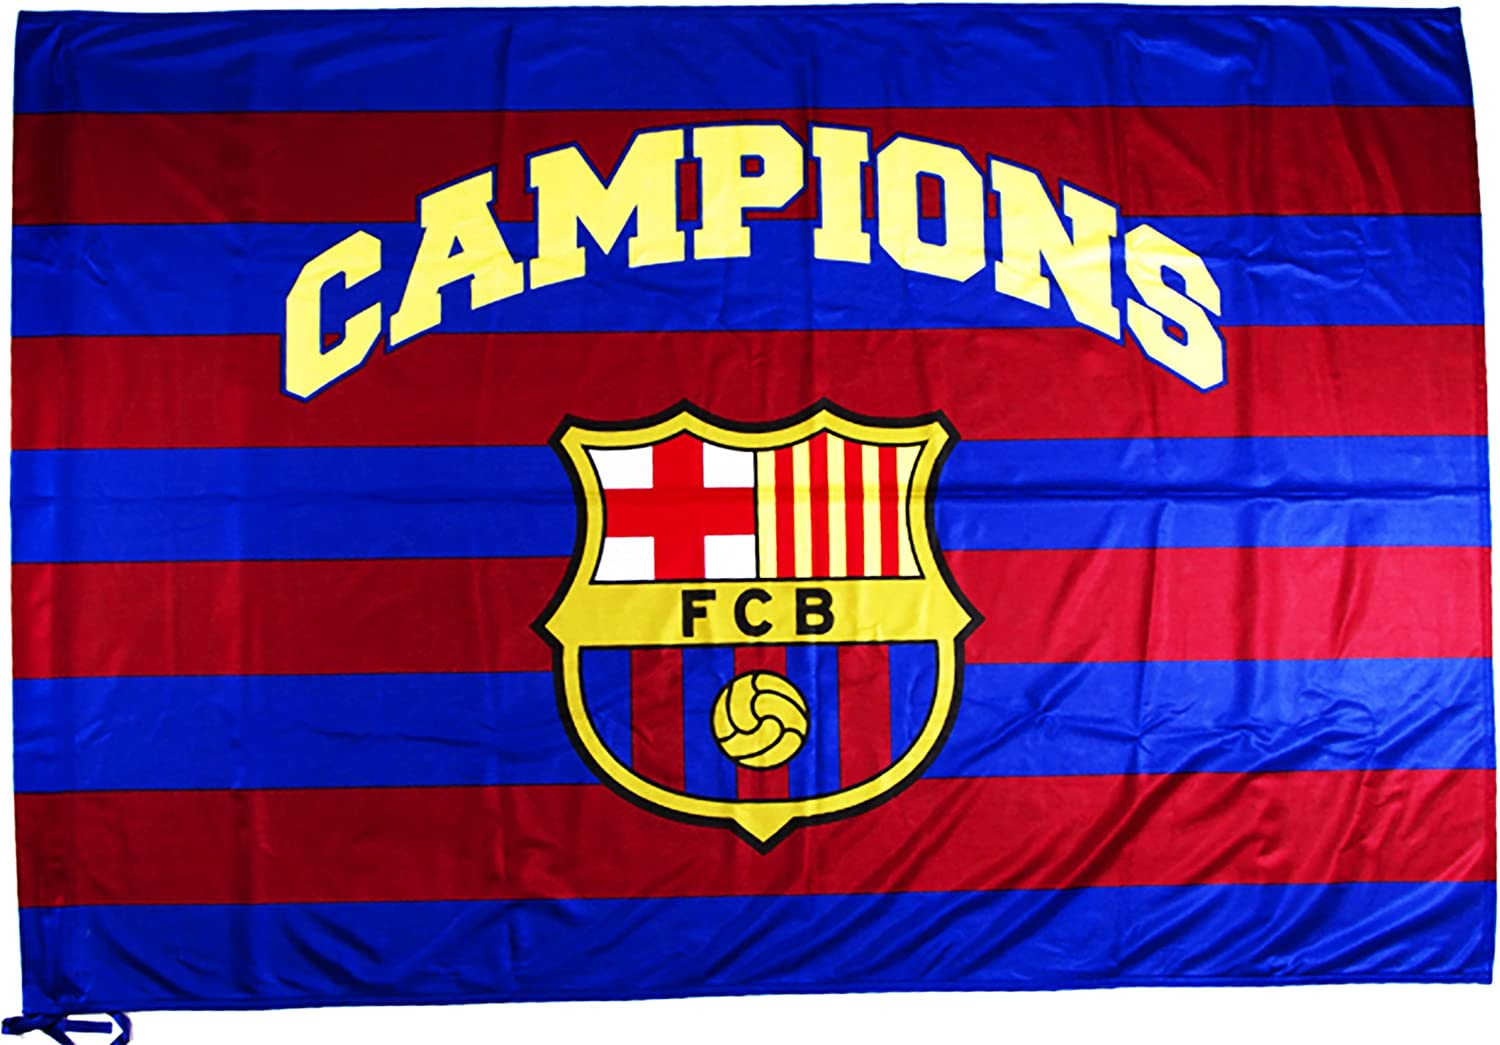 flag official fc barcelona barca 150 x 100 cm amazon co uk sports outdoors flag official fc barcelona barca 150